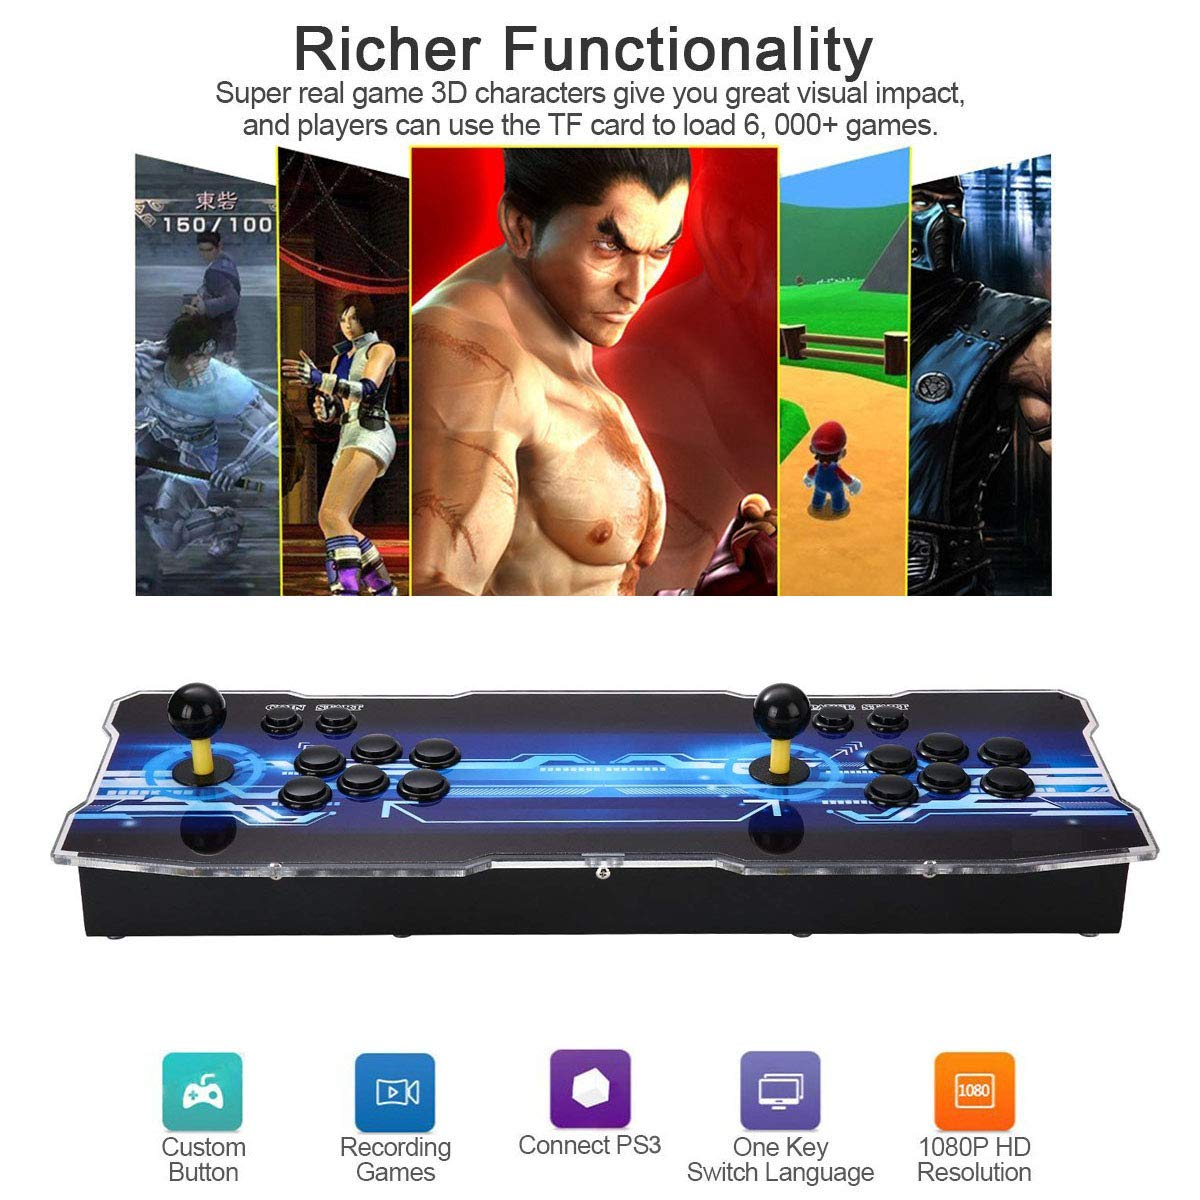 3D Pandora's Key Retro Home Arcade Game Console | No Games Pre-loaded | Full HD (1920x1080) Video | 2 Player Game Controls | Support 4 Players | Add More Games | HDMI/VGA/USB/AUX Audio Output by HAAMIIQII (Image #4)